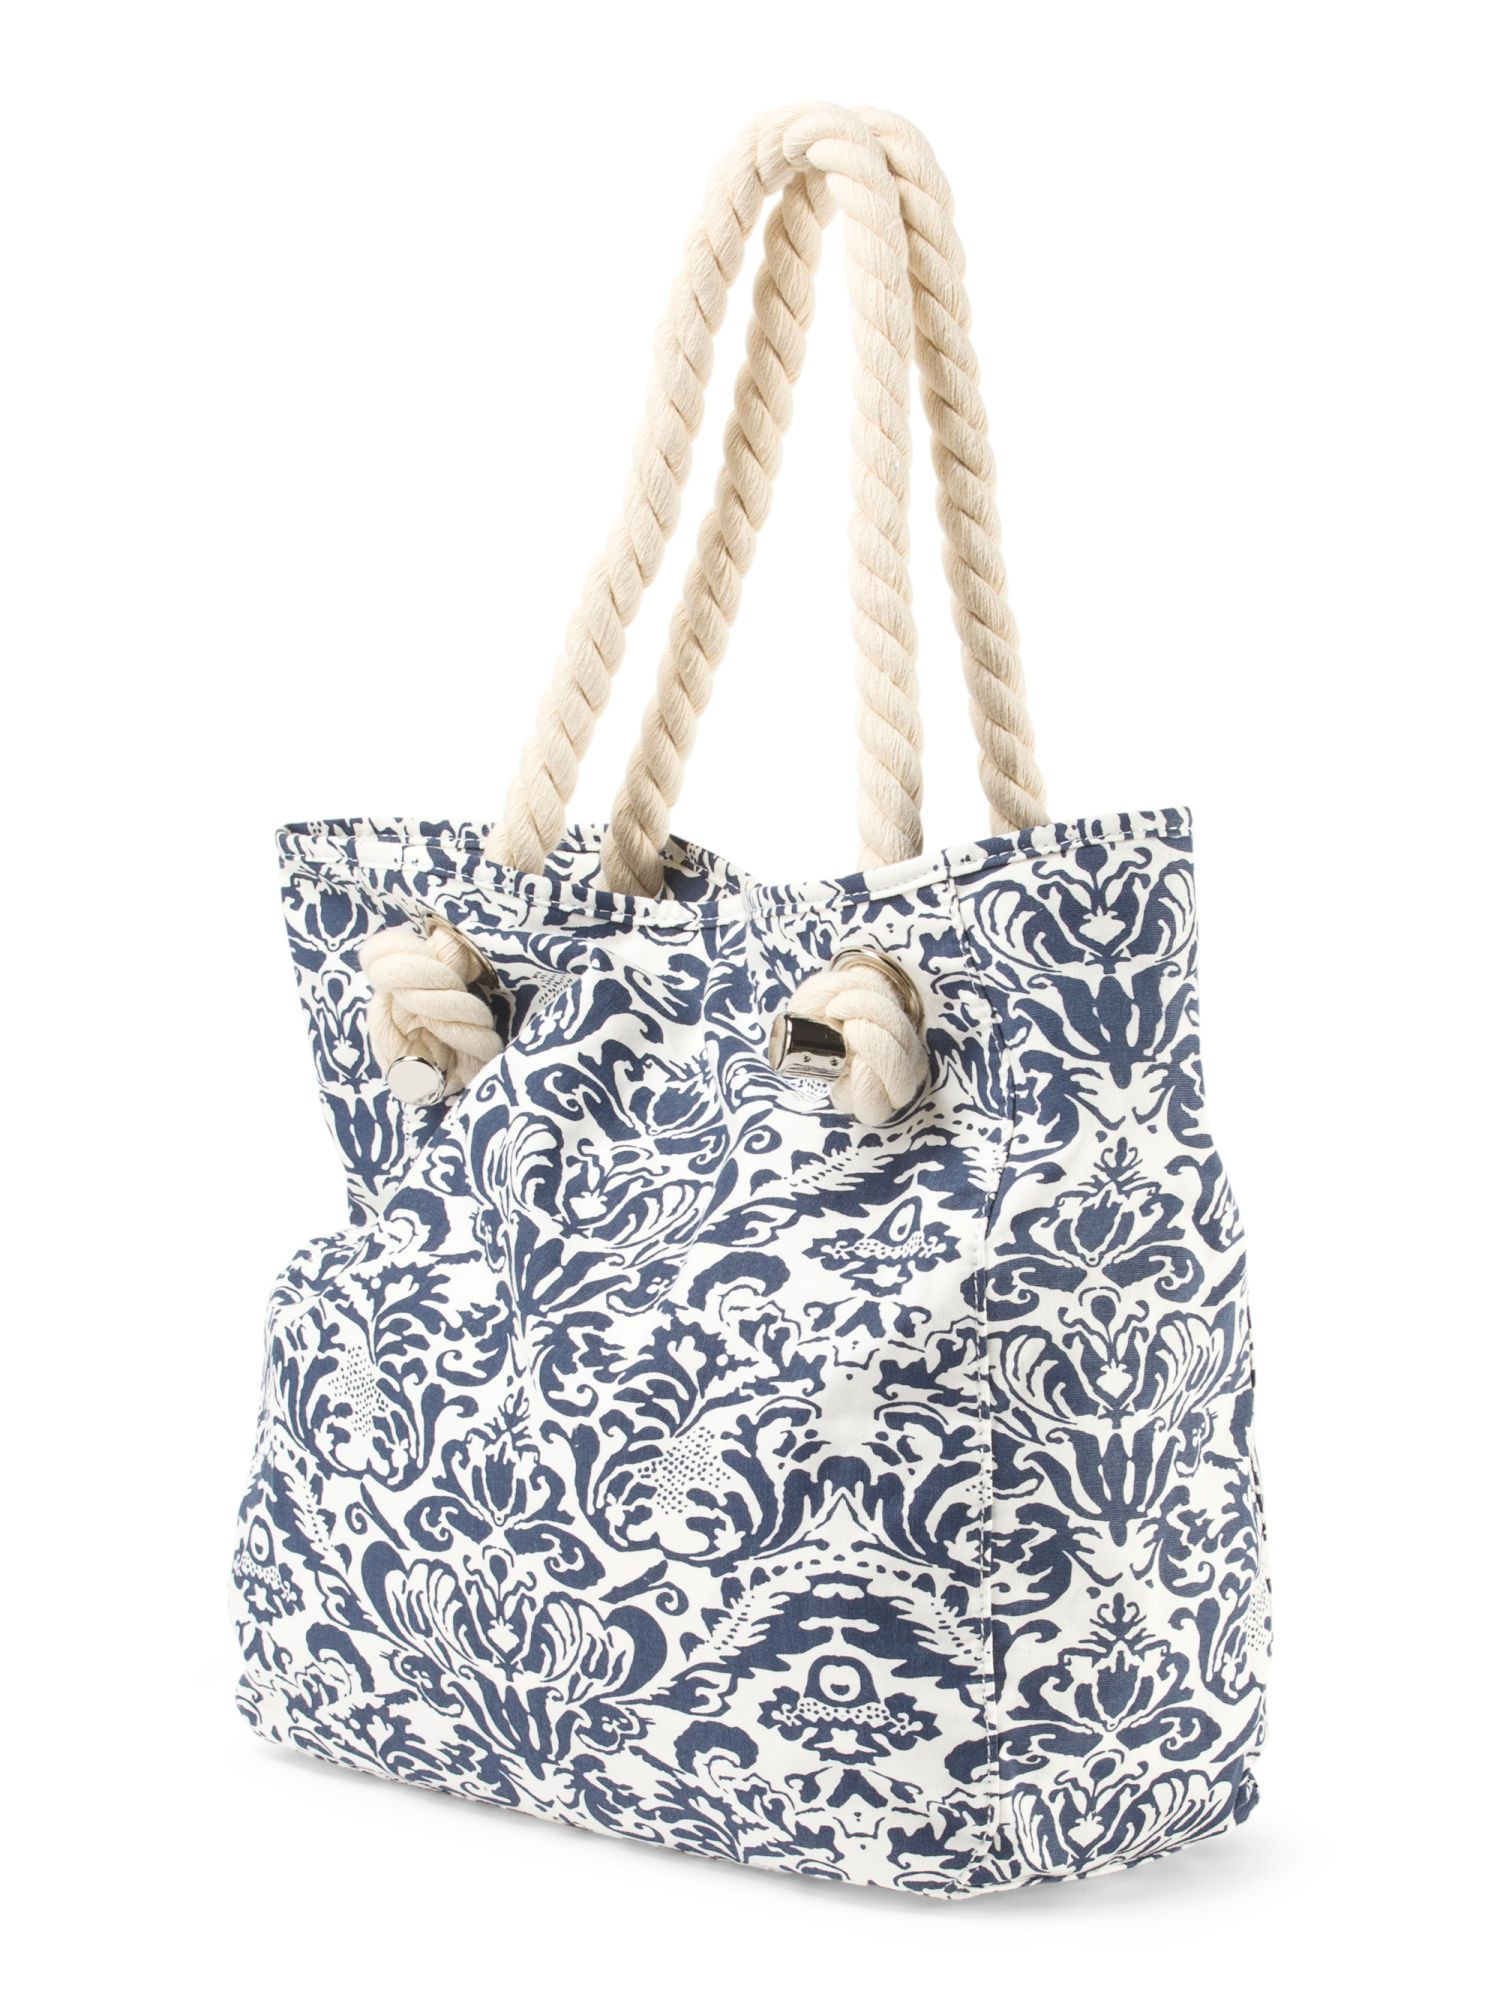 Donna Dixon Isla Splash Medium Tote From T J Ma Ideal For The Beach Wouldn You Say